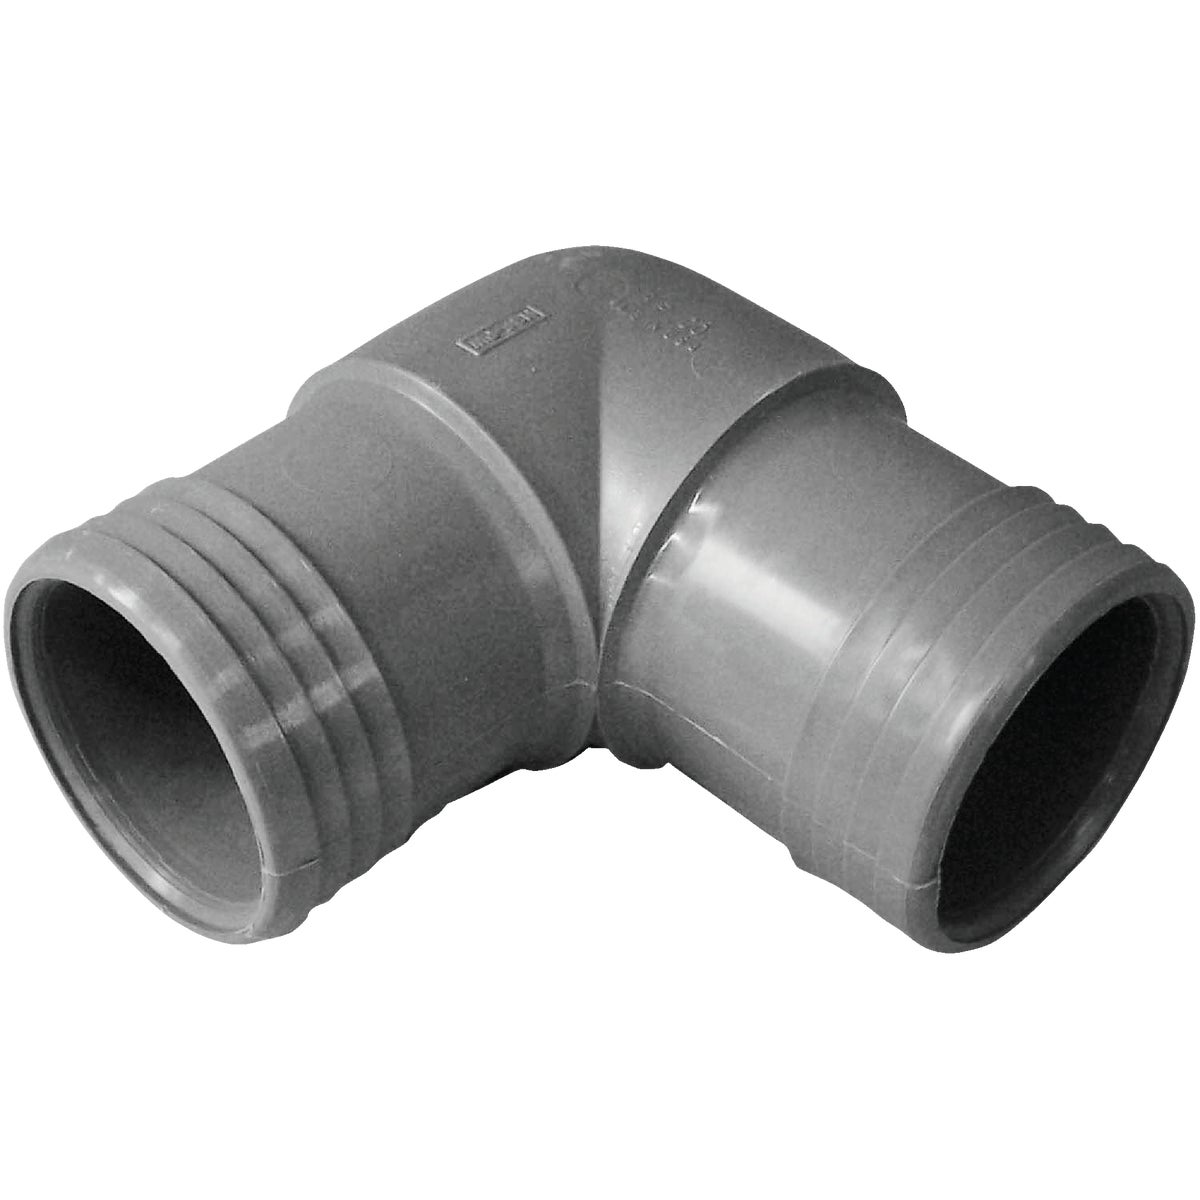 "2"" POLY INSERT ELBOW - 350720 by Genova Inc"